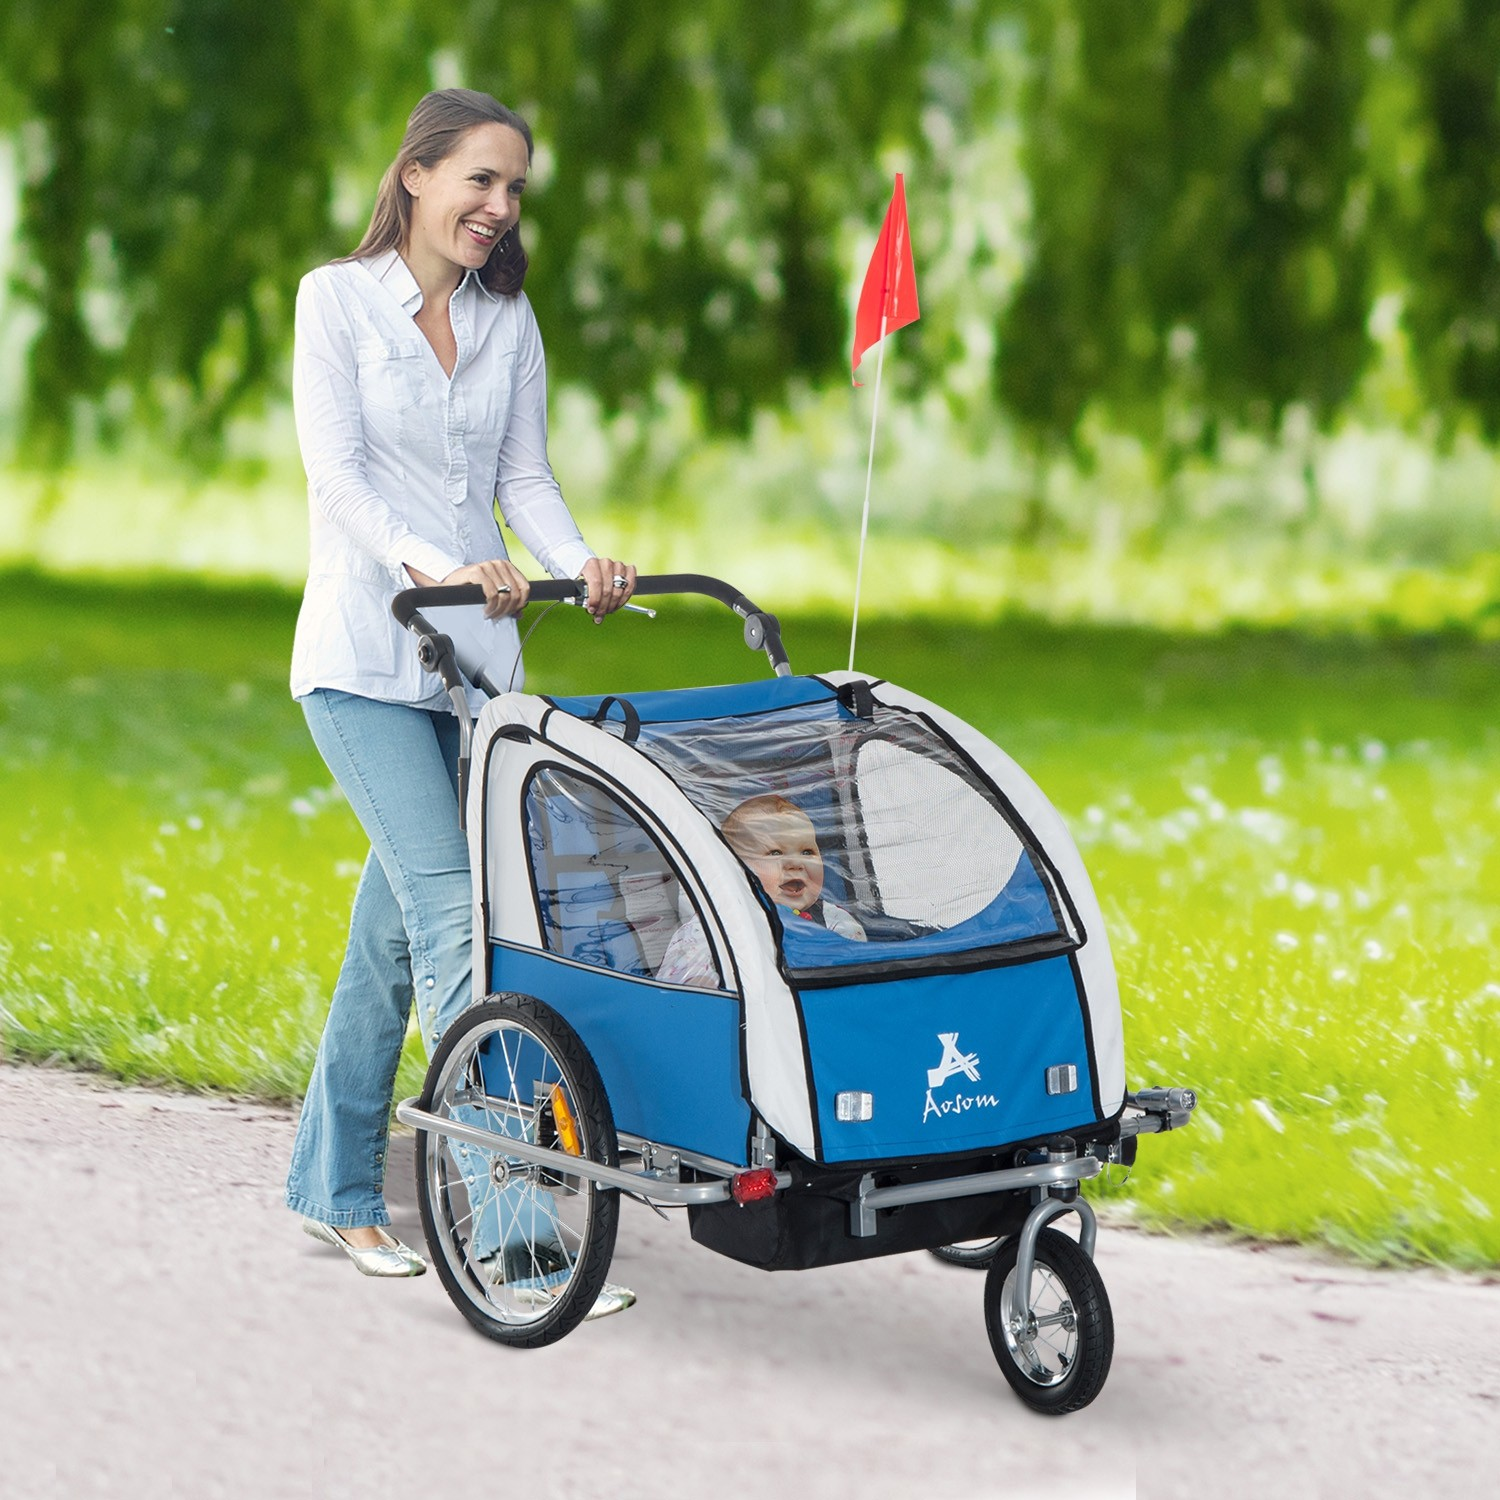 stroller buying guide - aosom baby bike trailer stroller